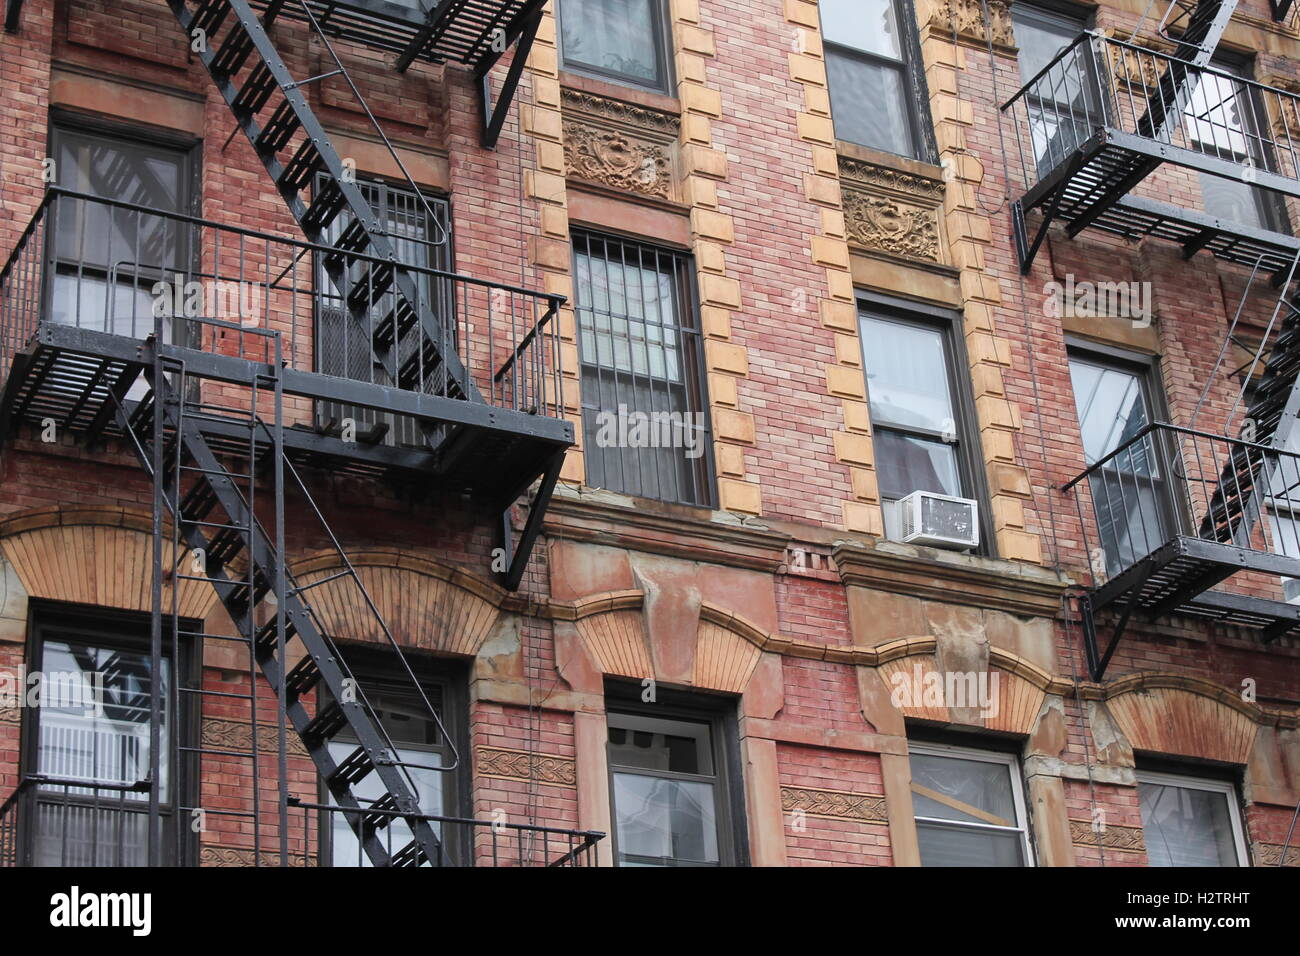 Old Red Brick Apartment Building In New York City   Stock Image Part 67